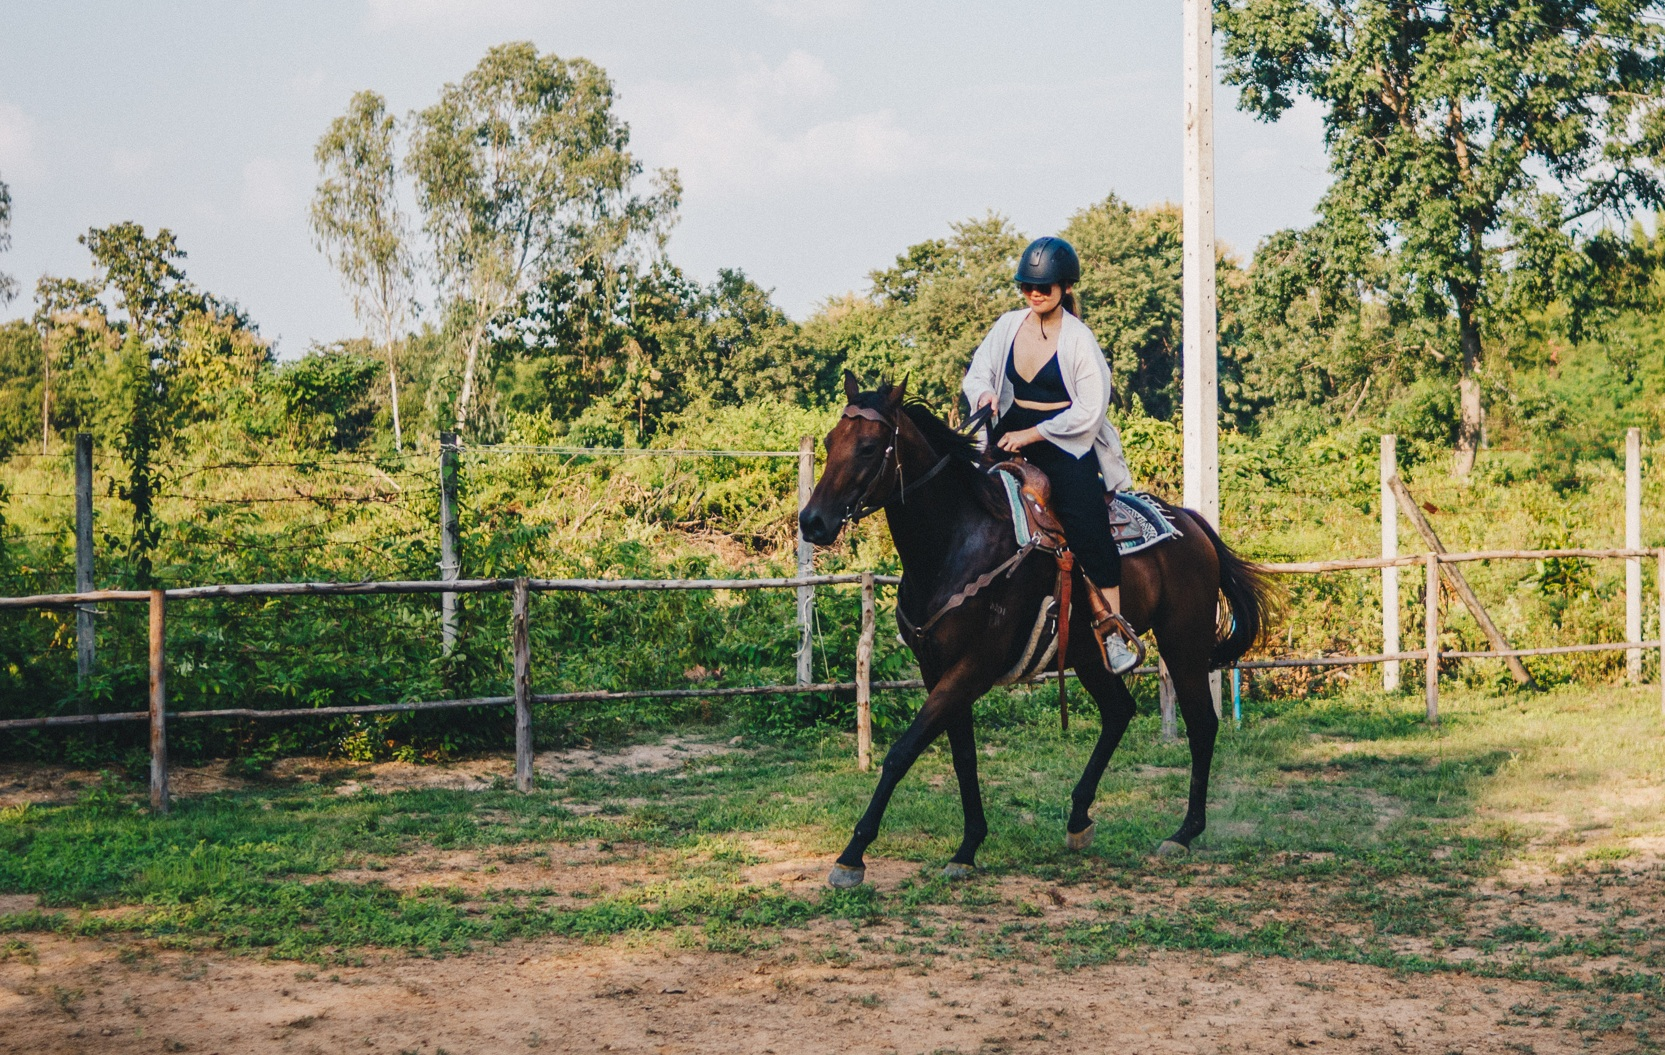 Second-Wind-Horse-Rescue-Ranch-ChaingMai-Suniko-Photo-October-2018-10.jpg